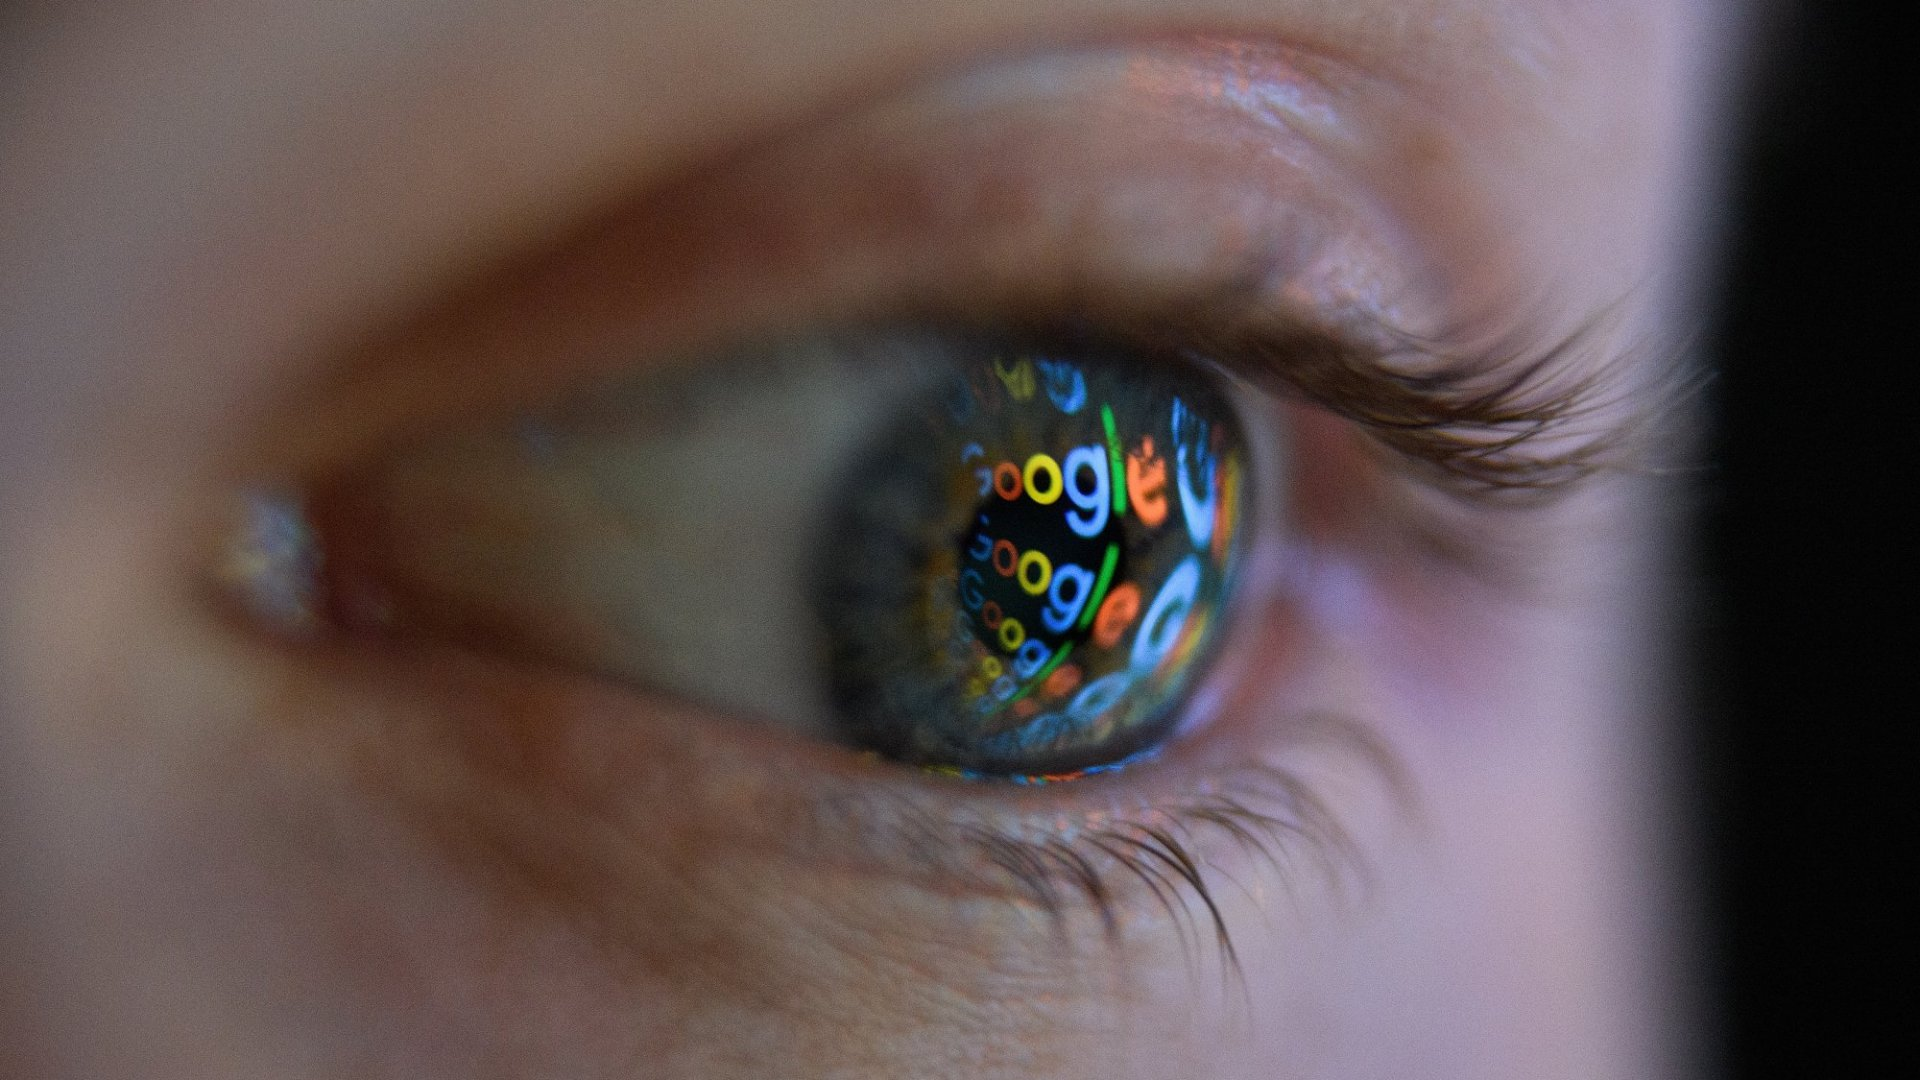 Politics and the Personal Have Invaded Google. A Cautionary Tale.